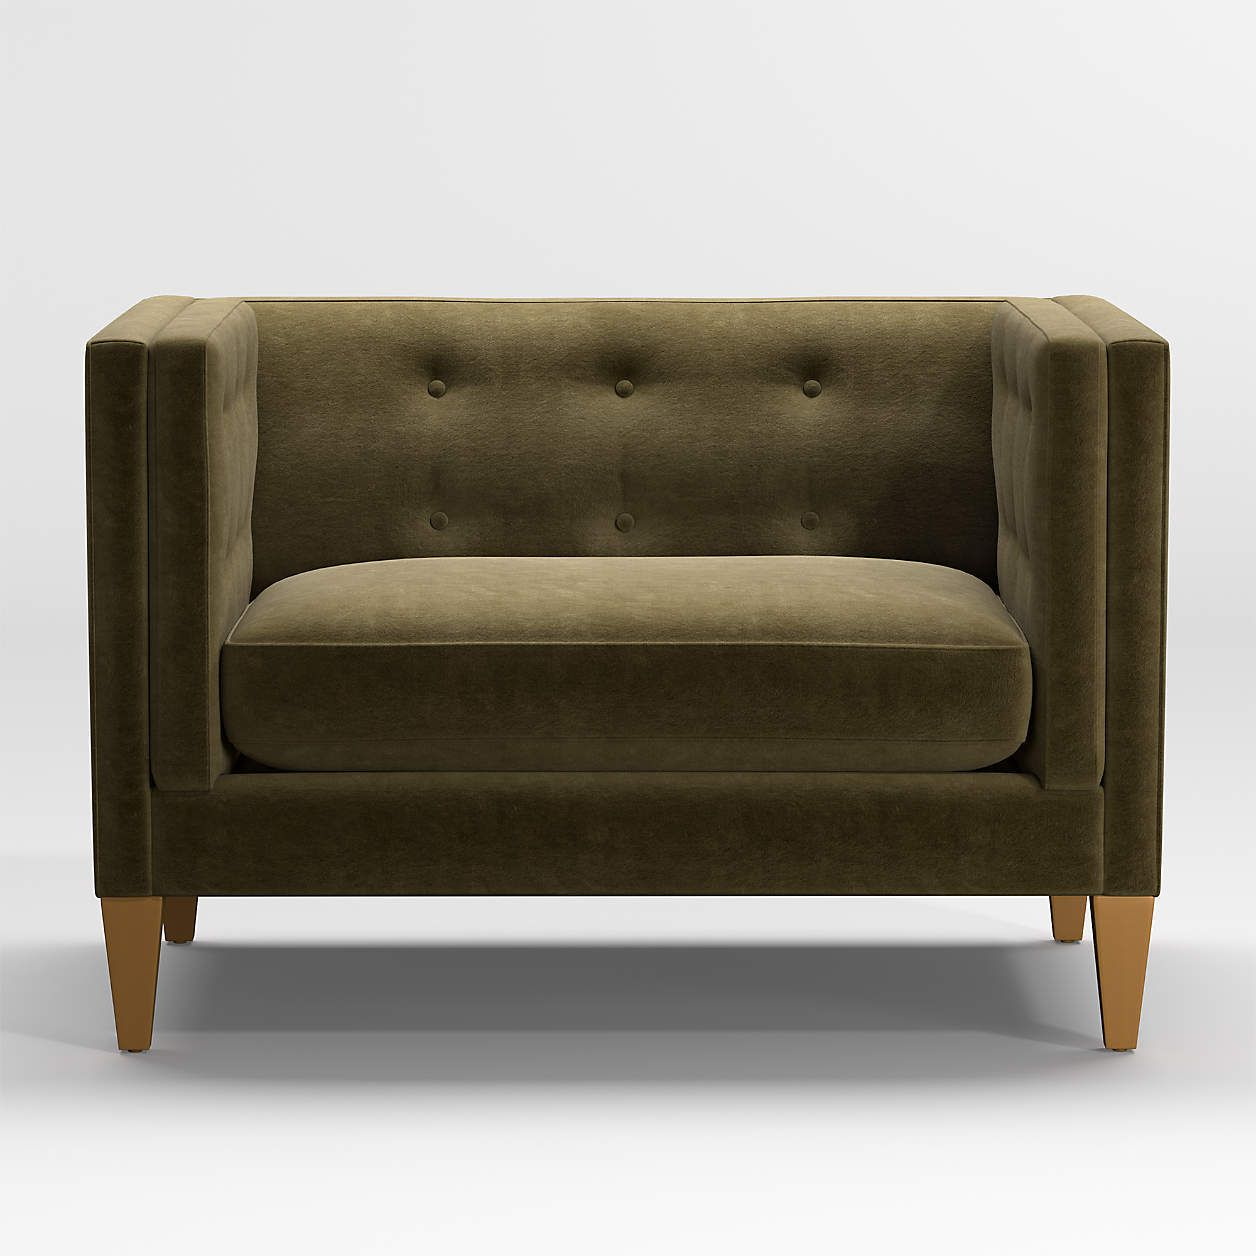 An olive green tufted chair and a half, currently for sale at Crate & Barrel